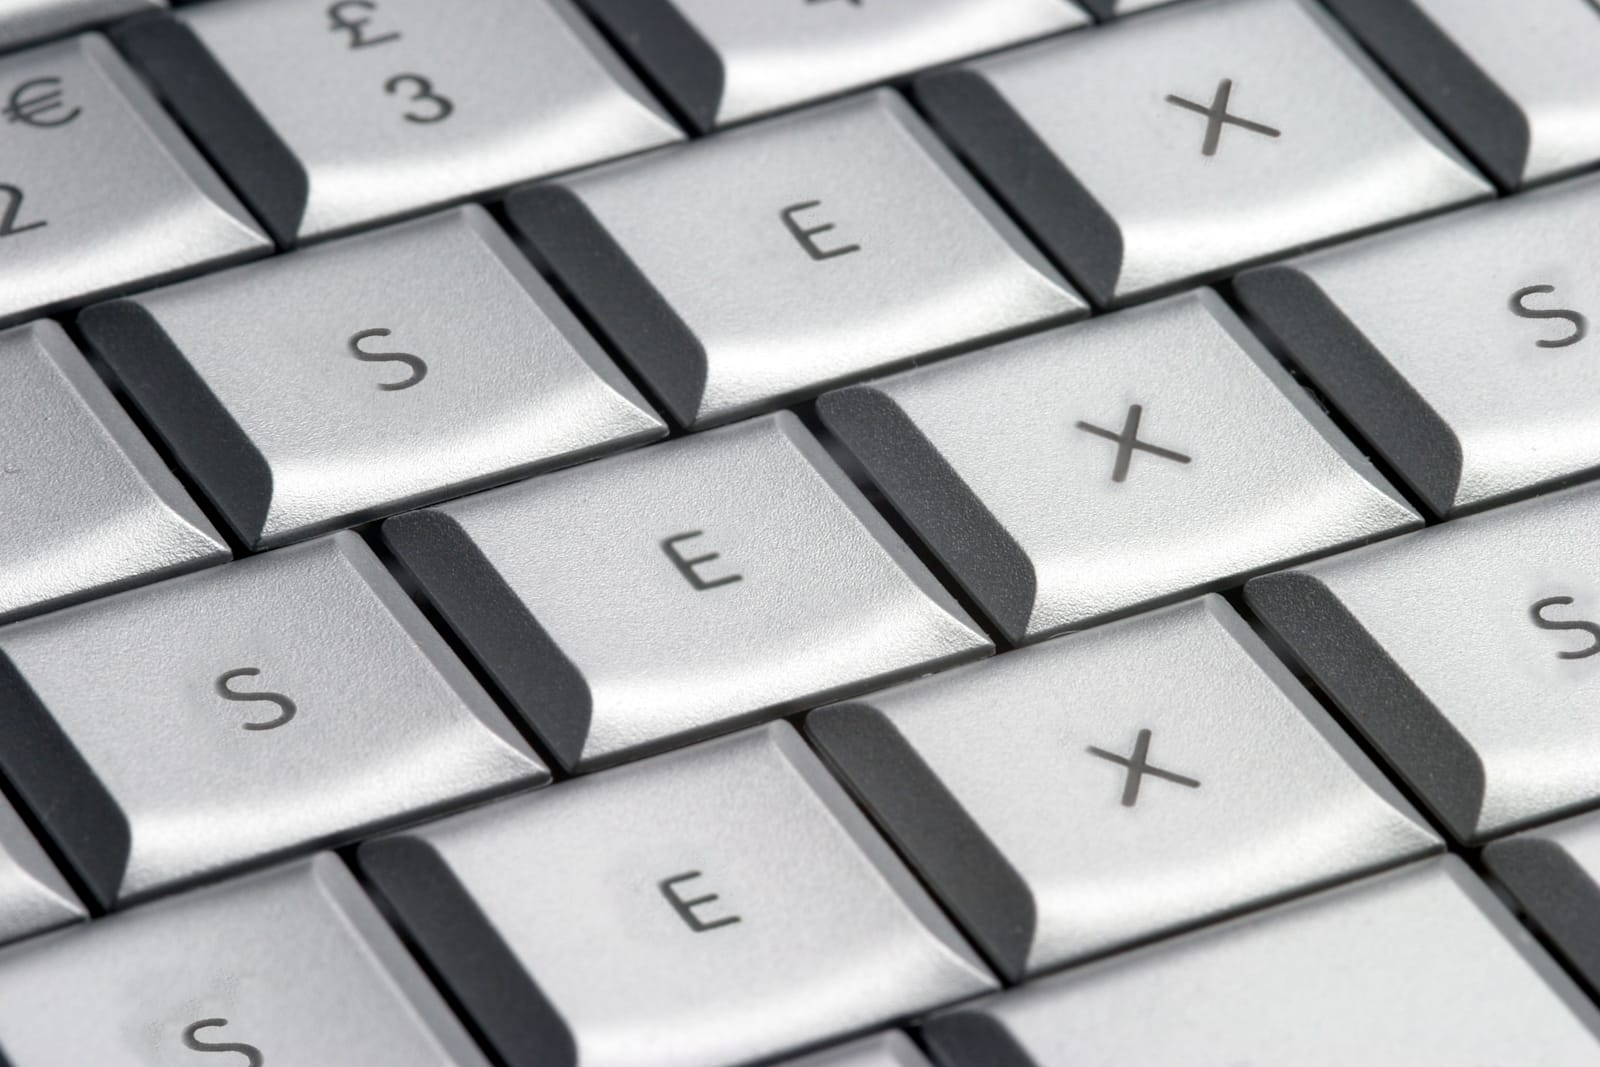 Close up of a computer keyboard with all of the keys spelling out SEX